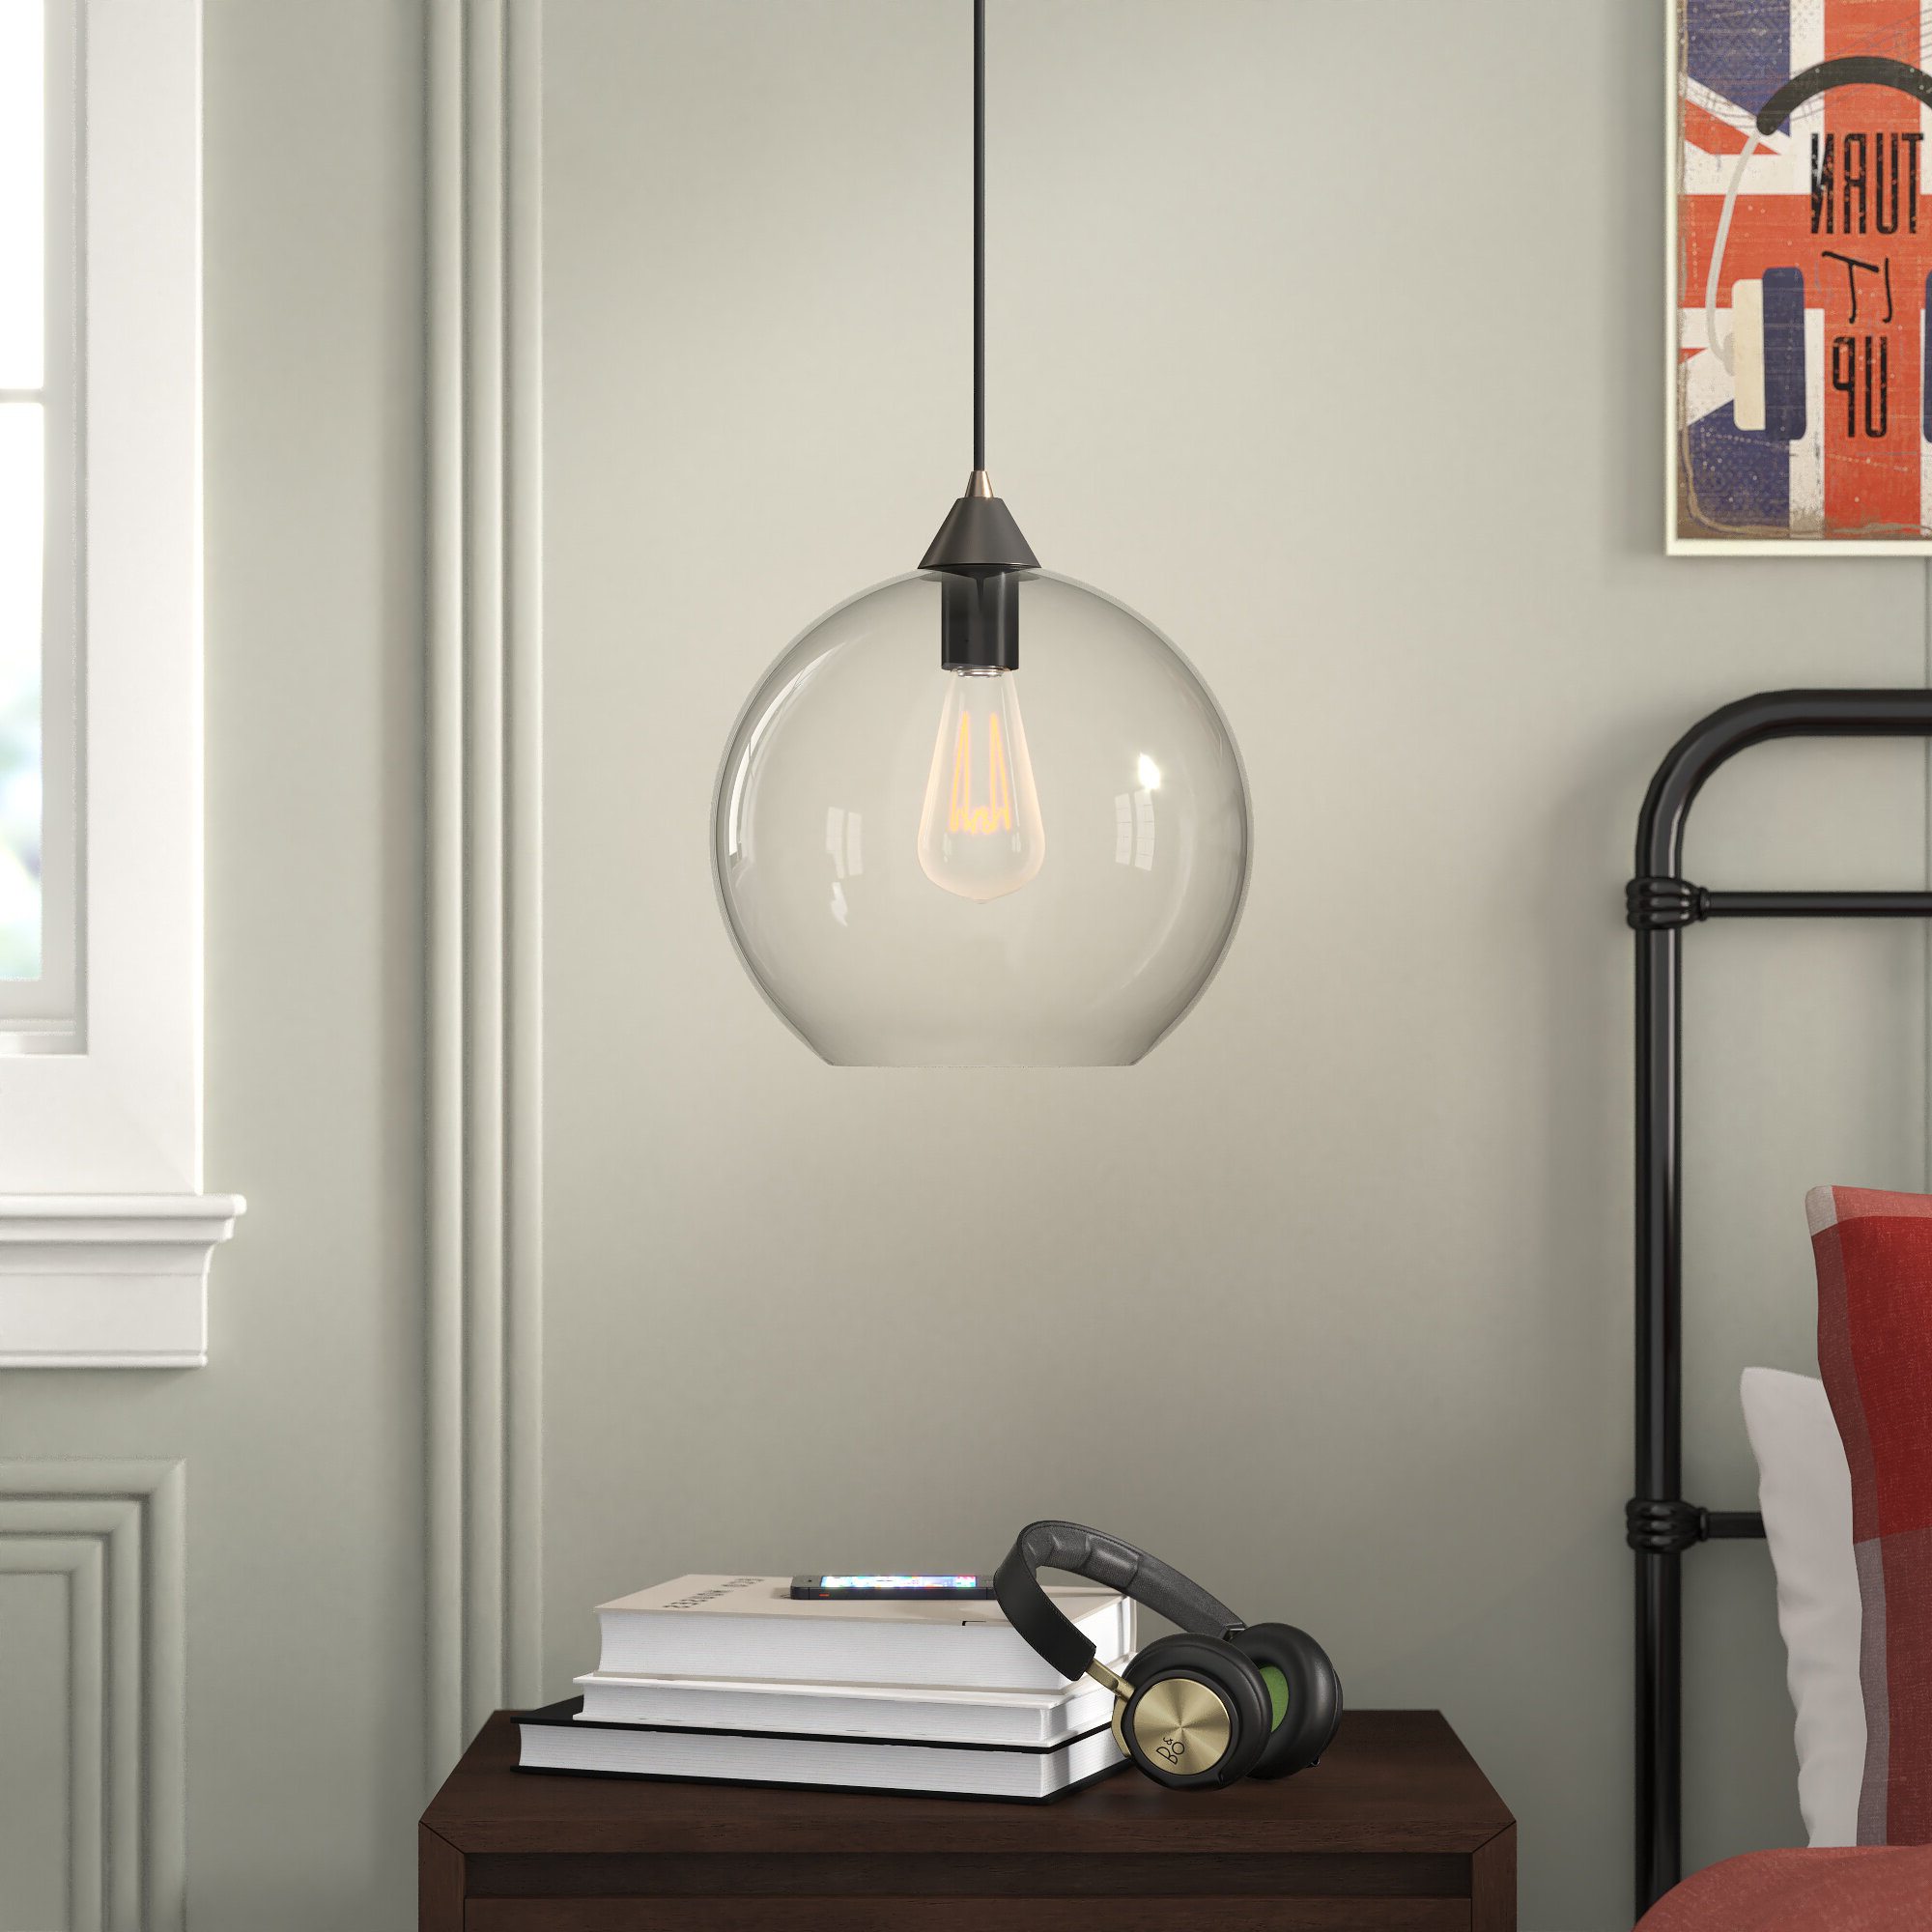 Current Bundy 1 Light Single Globe Pendants Throughout Alana 1 Light Single Globe Pendant (View 8 of 20)